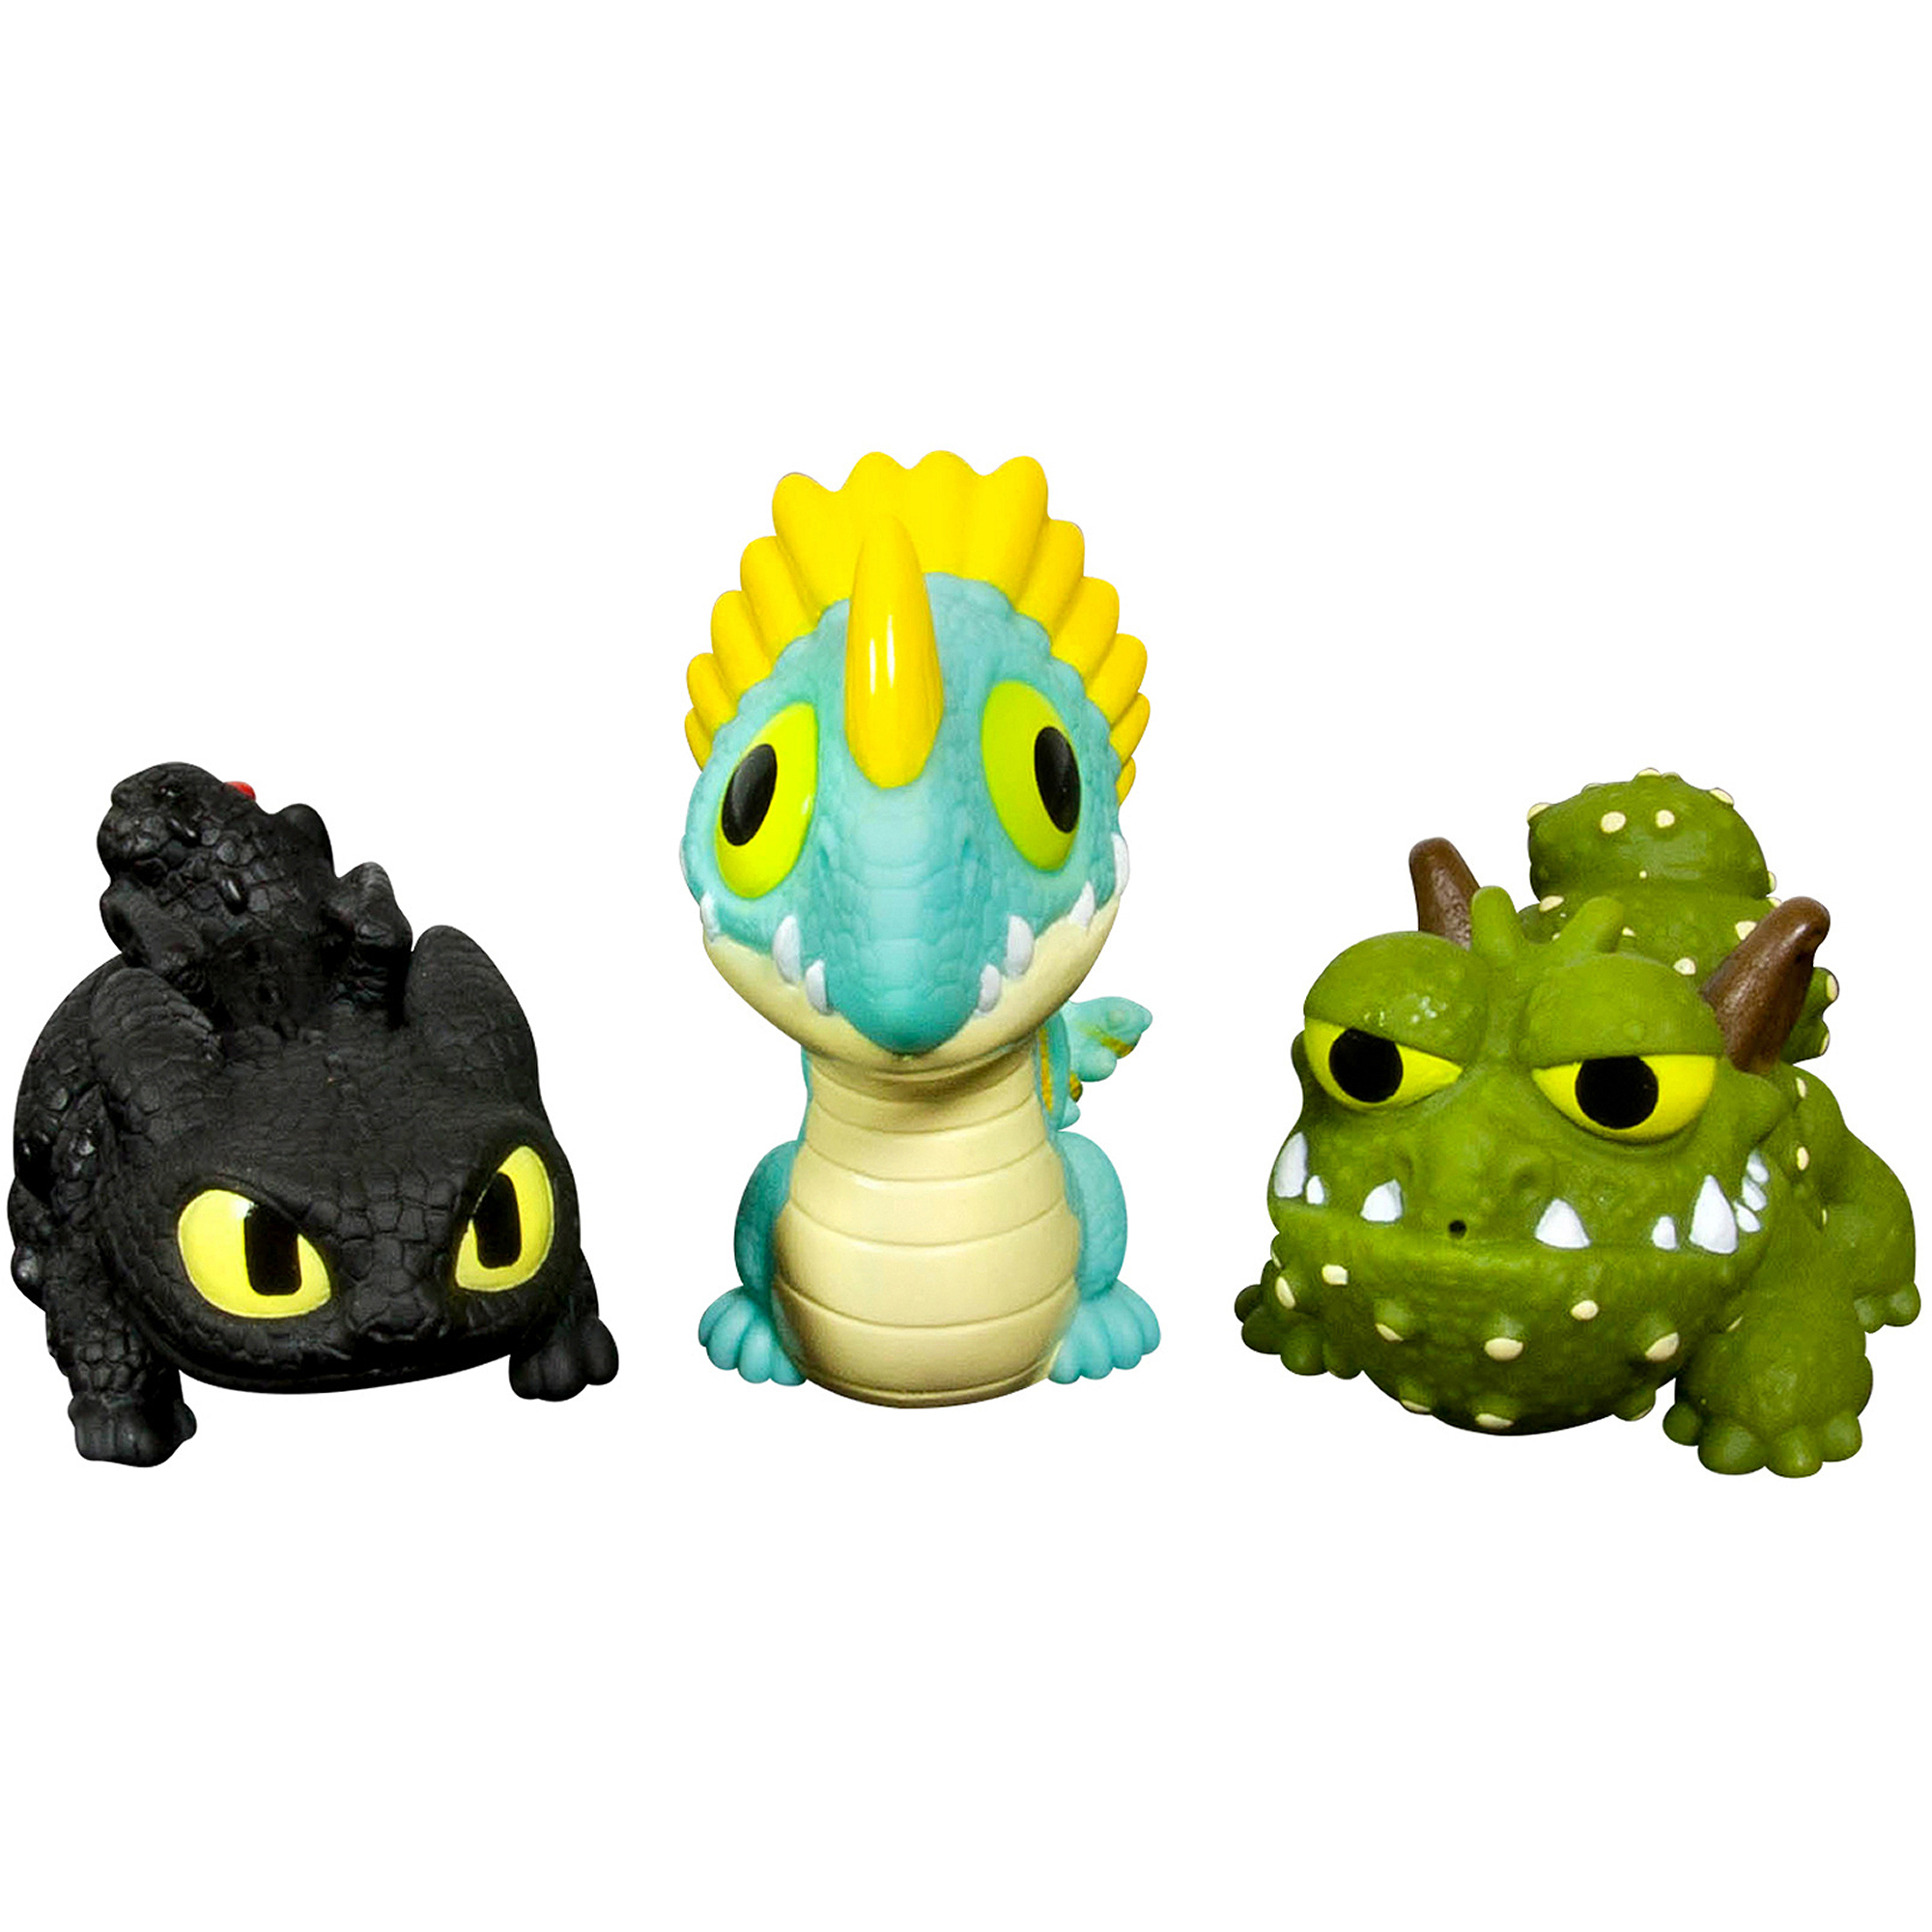 DreamWorks Dragons How to Train Your Dragon 2 Squirt and Float